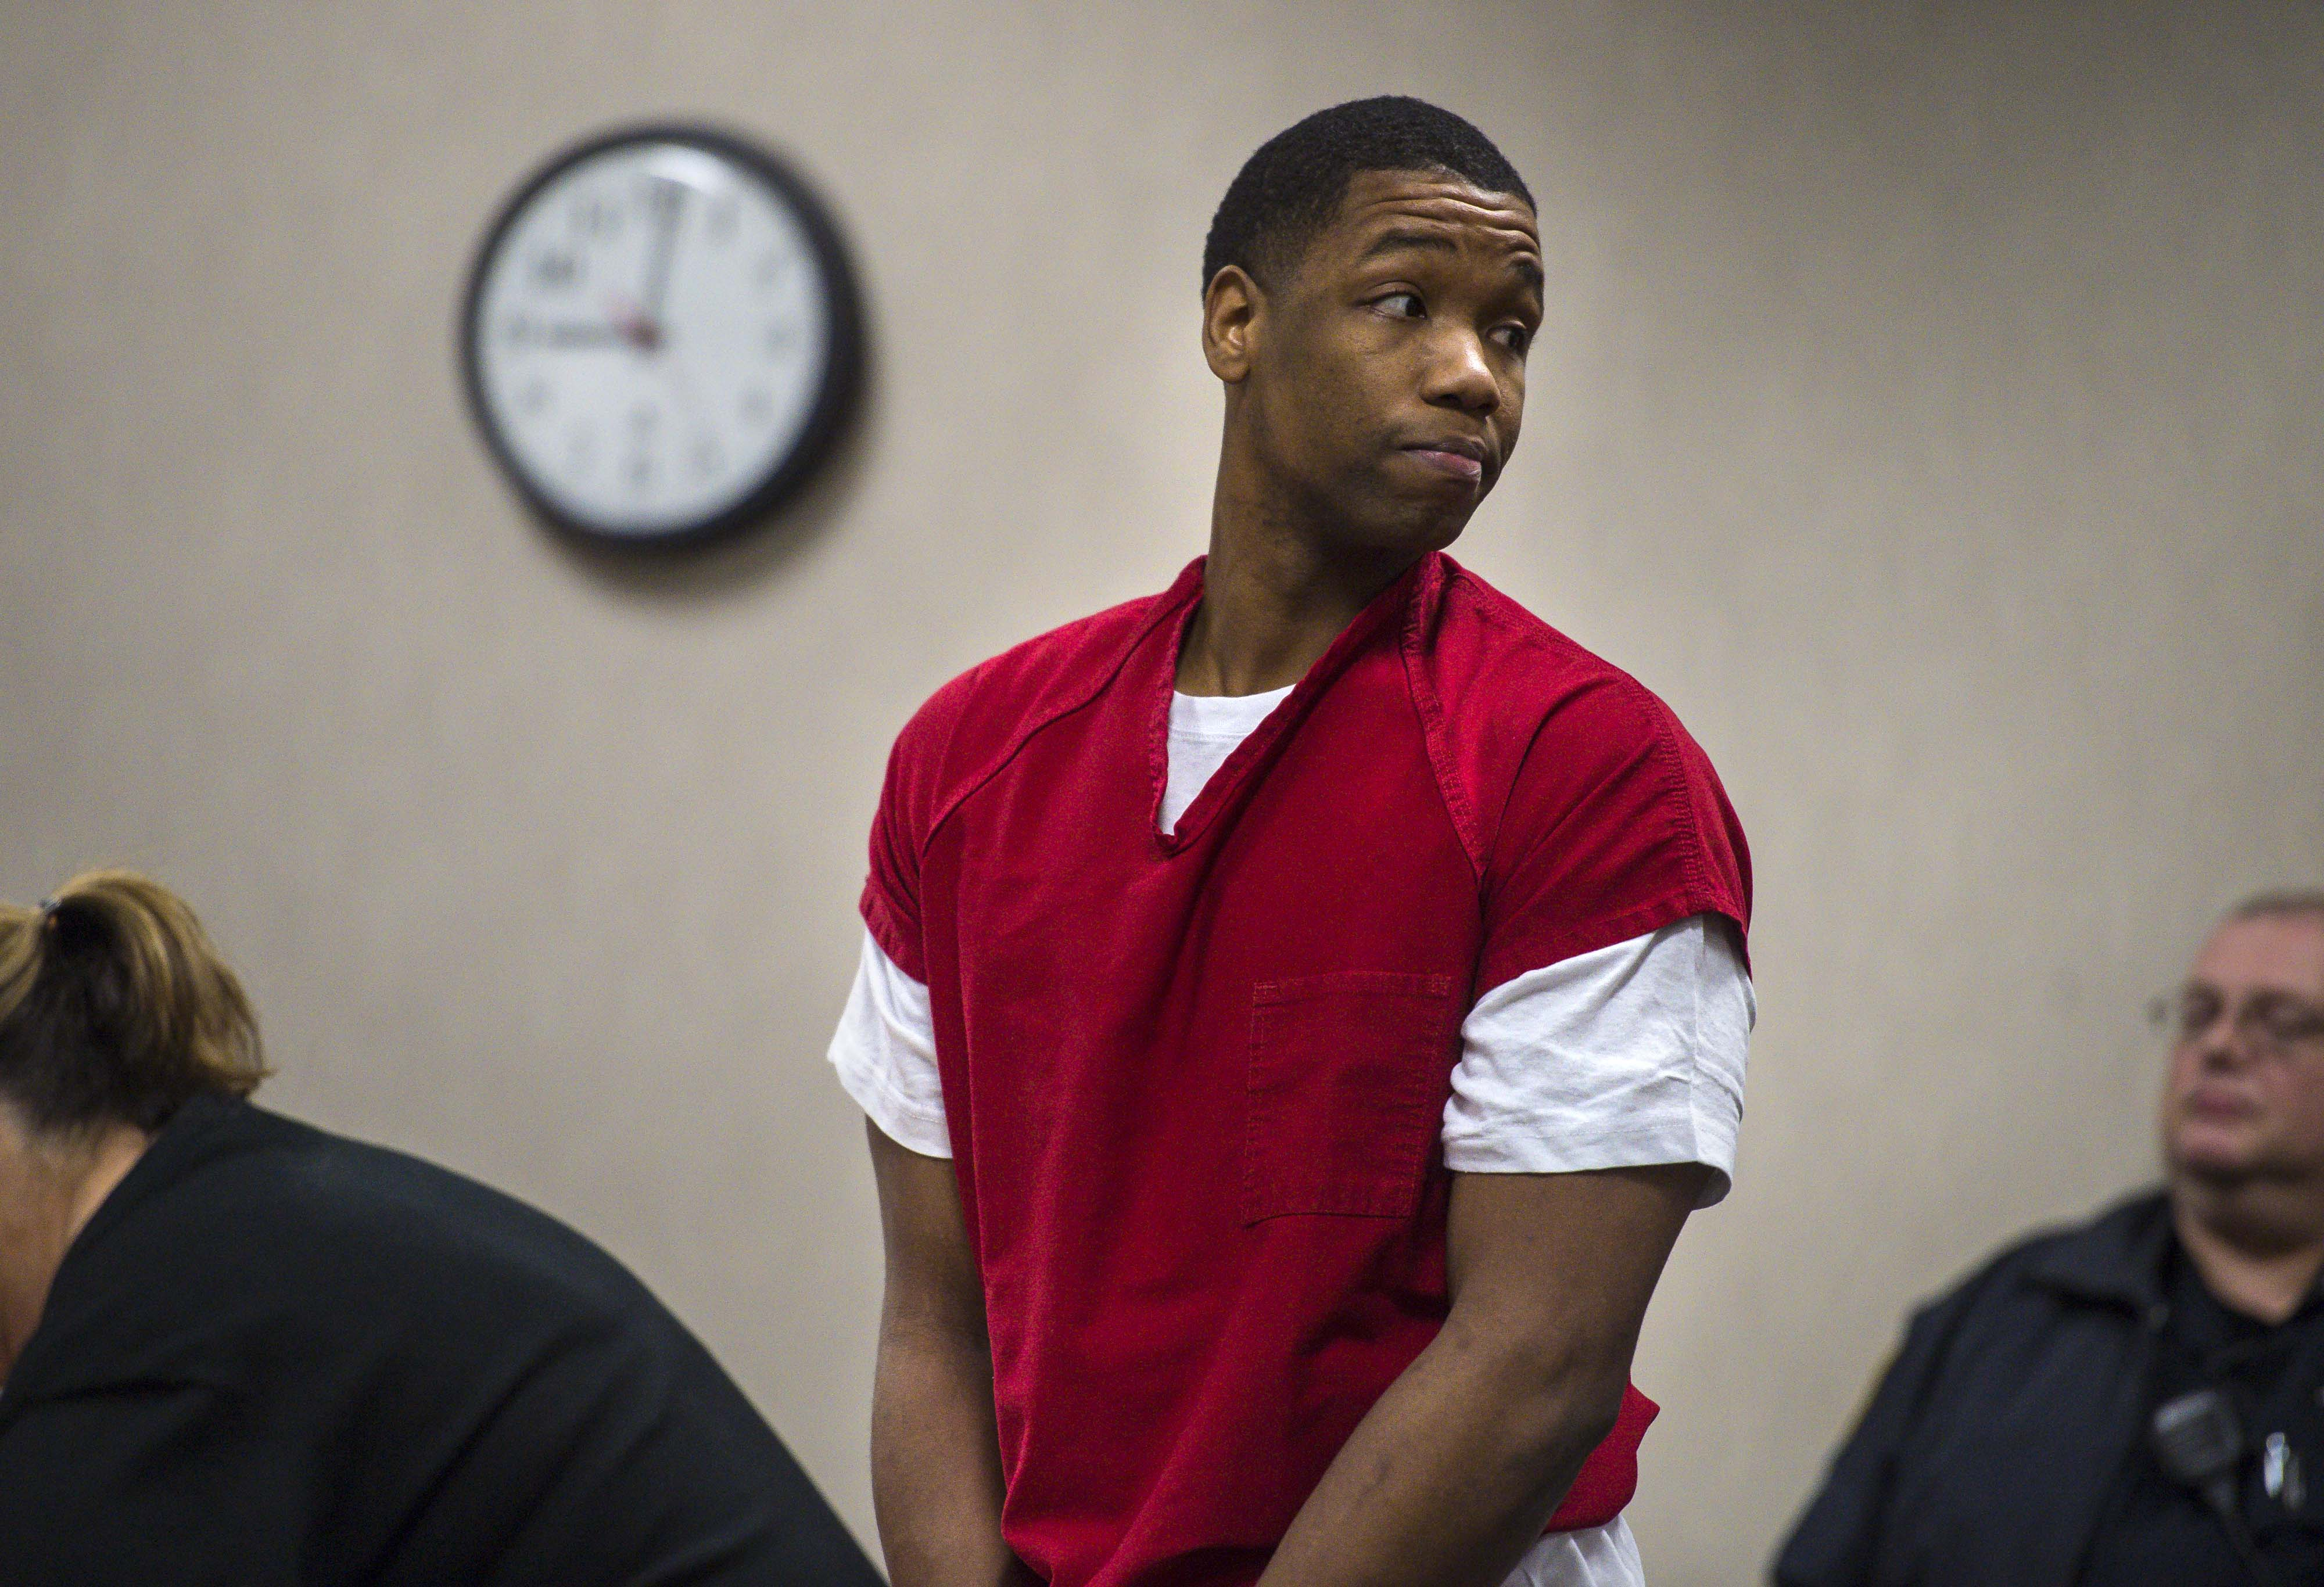 Church Street fatal shooting suspect to face trial this week